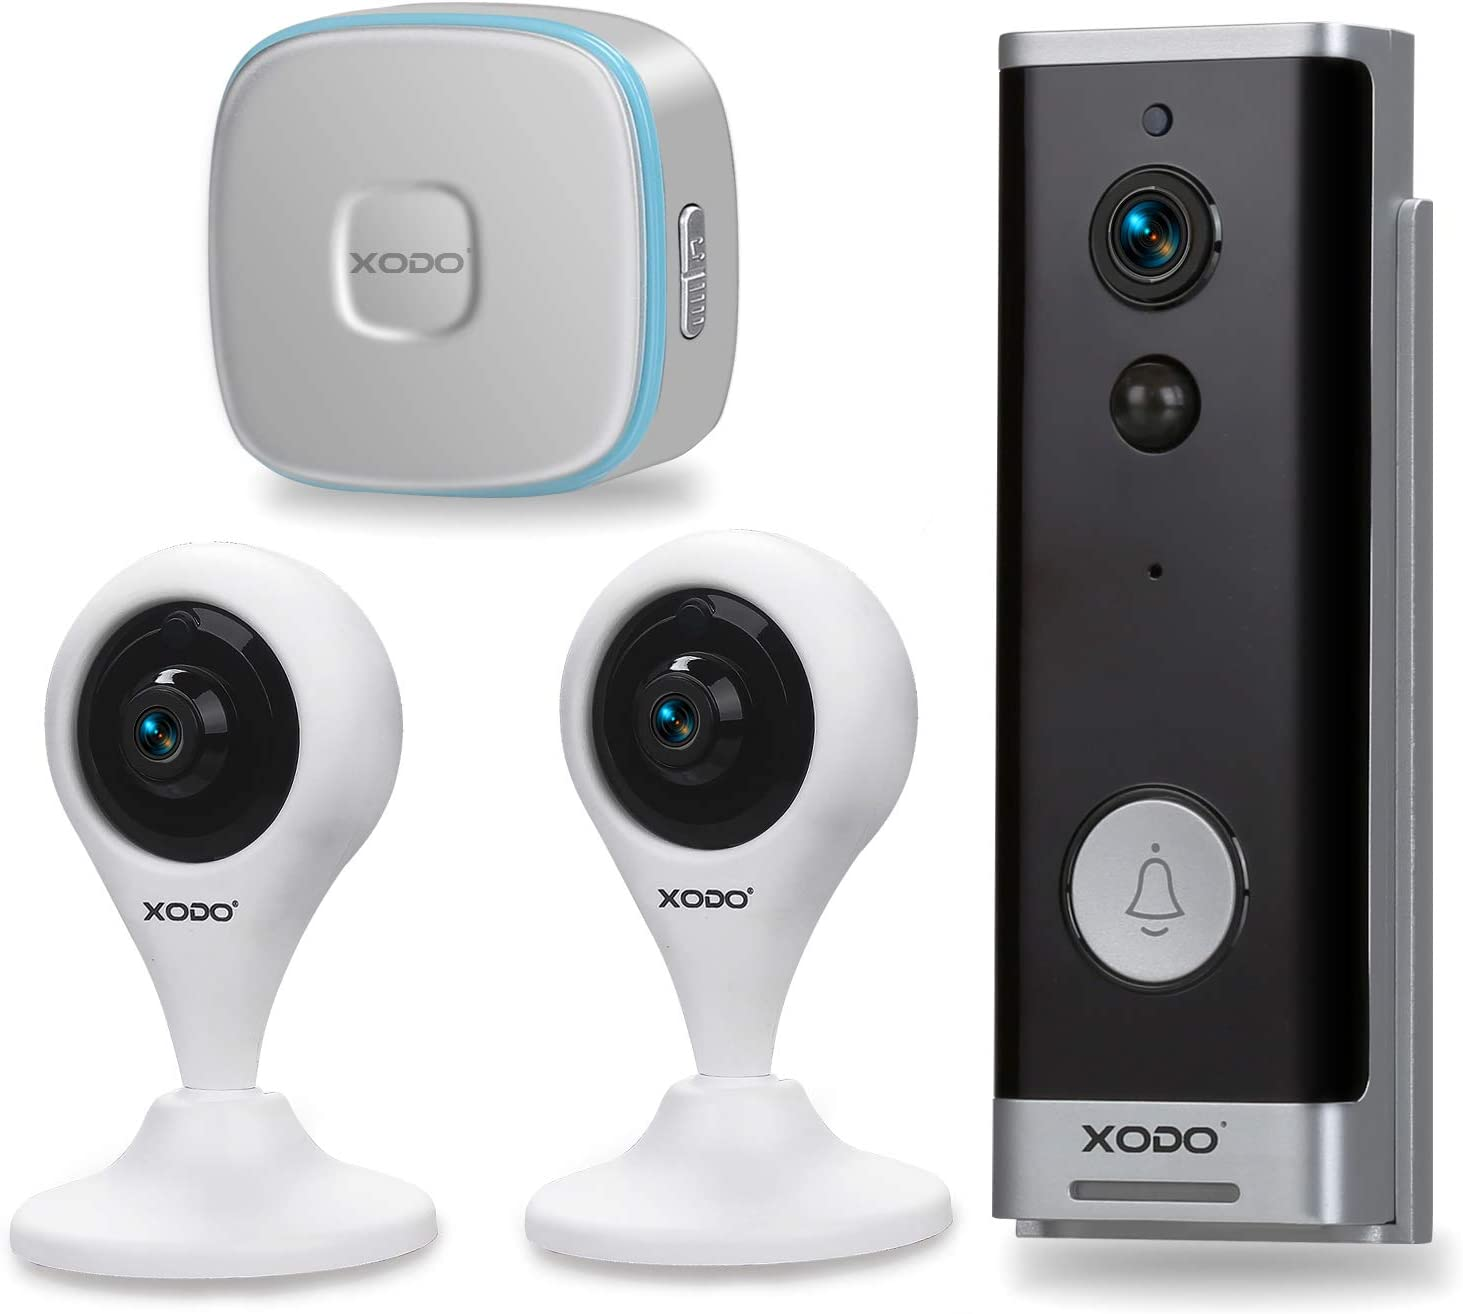 XODO PK2 WiFi Smart Home Security Kit, 2-Pack 1080p Camera, Weather Resistant Live Video Doorbell, Motion Sensing, Chime, App Controlled, DIY Security System, Works with Alexa/Google Home Assistant